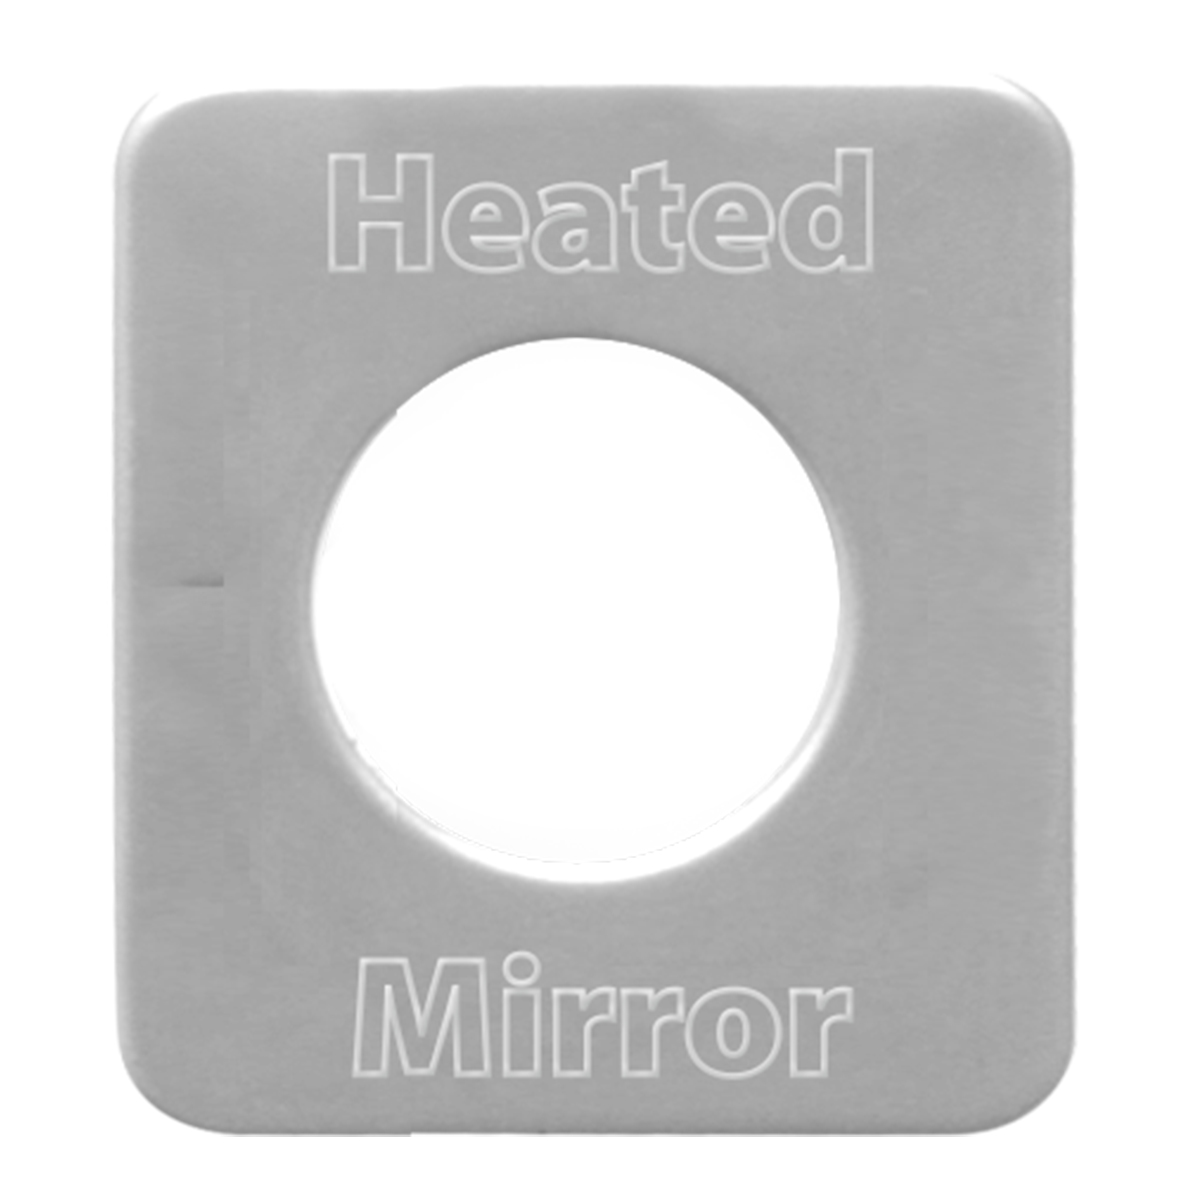 68584 Stainless Steel Mirror Heat Switch Plate for KW